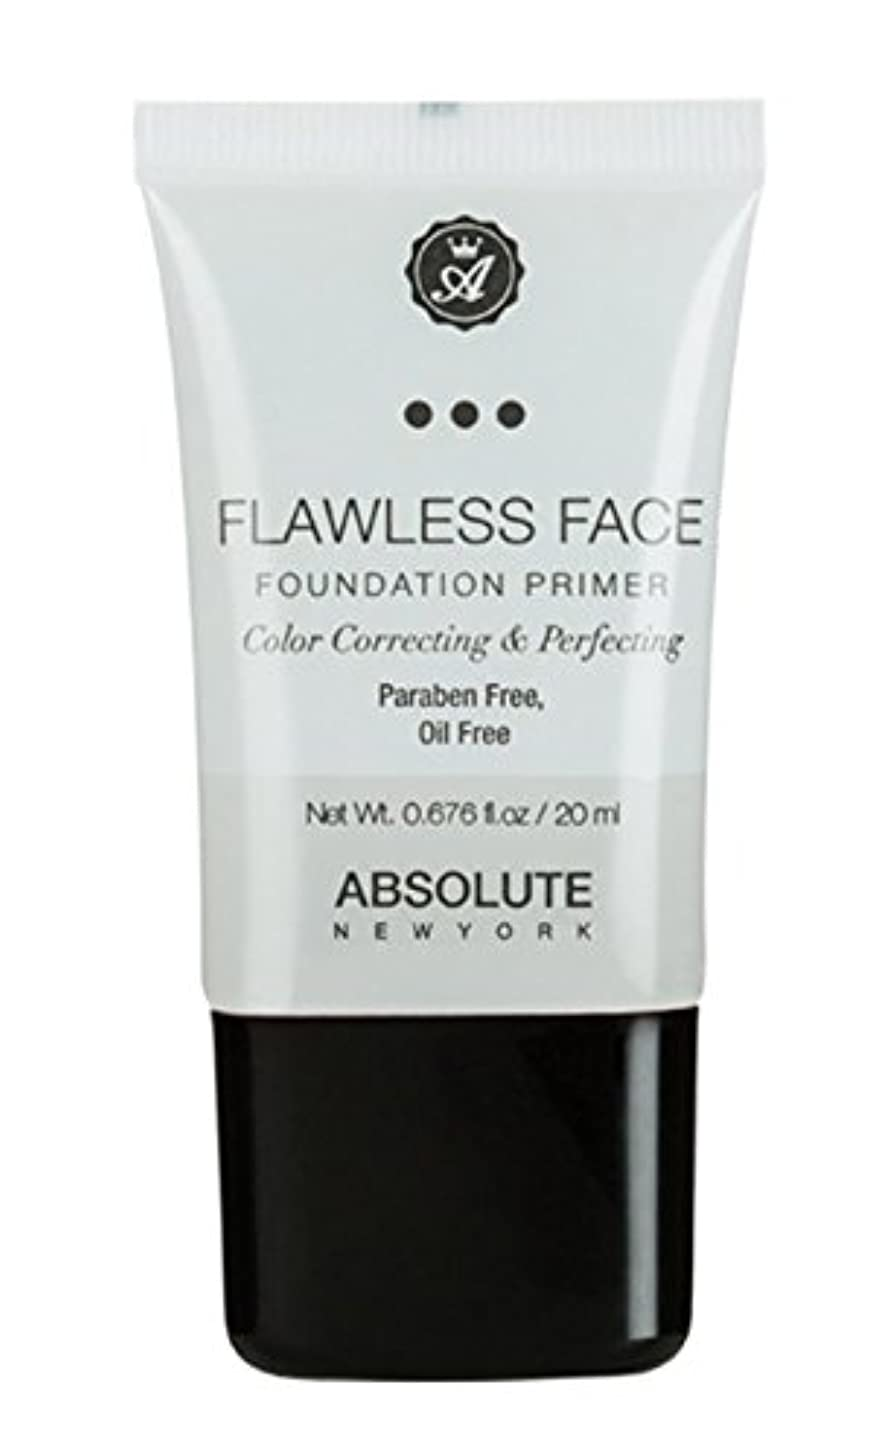 土器差別的歯車ABSOLUTE Flawless Foundation Primer - Clear (並行輸入品)